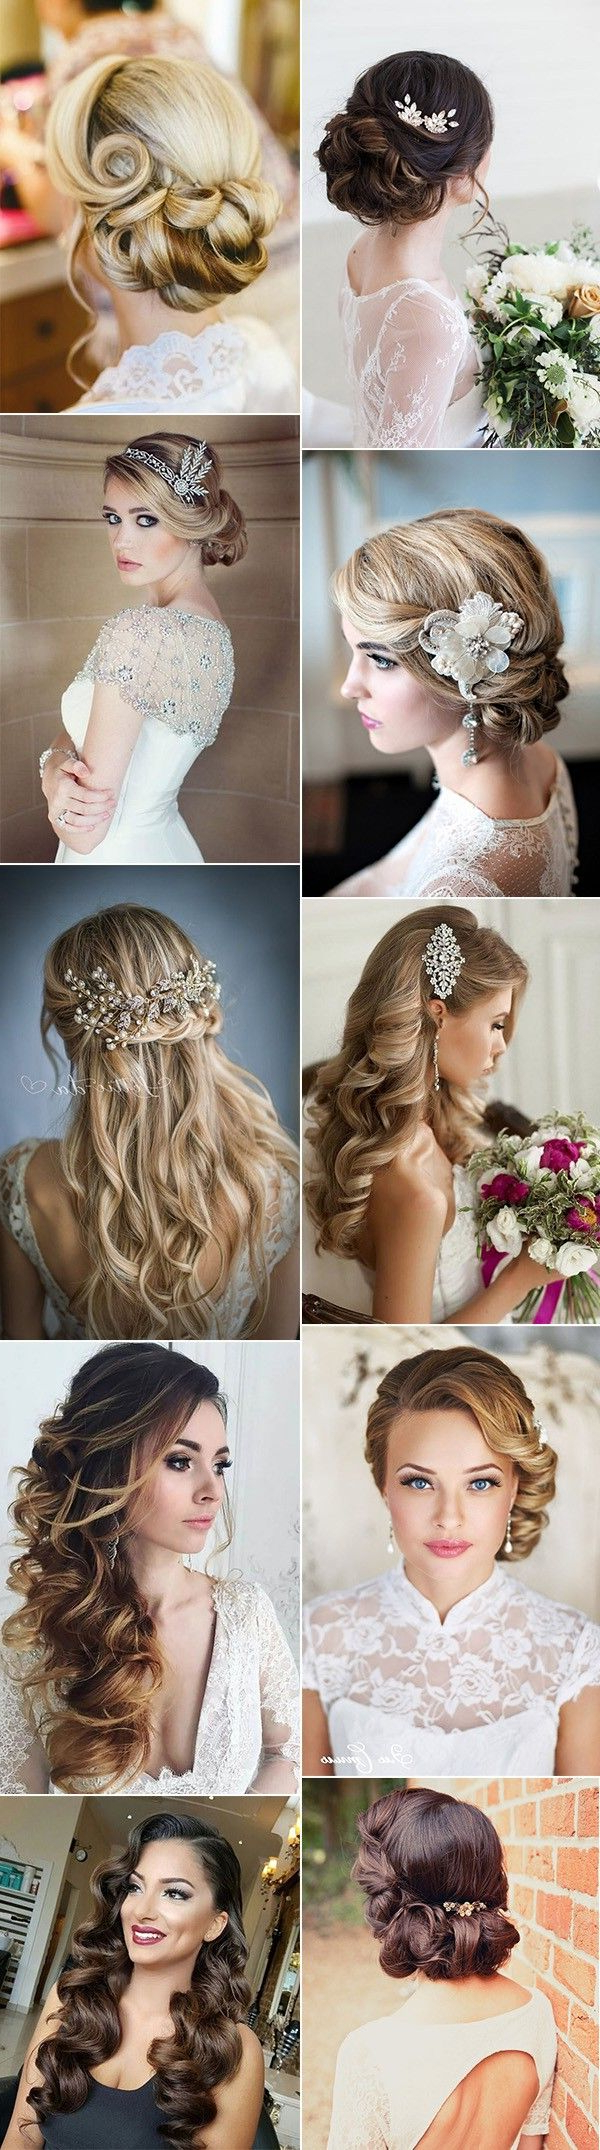 Well Liked Vintage Asymmetrical Wedding Hairstyles Within Top 20 Vintage Wedding Hairstyles For Brides (View 20 of 20)